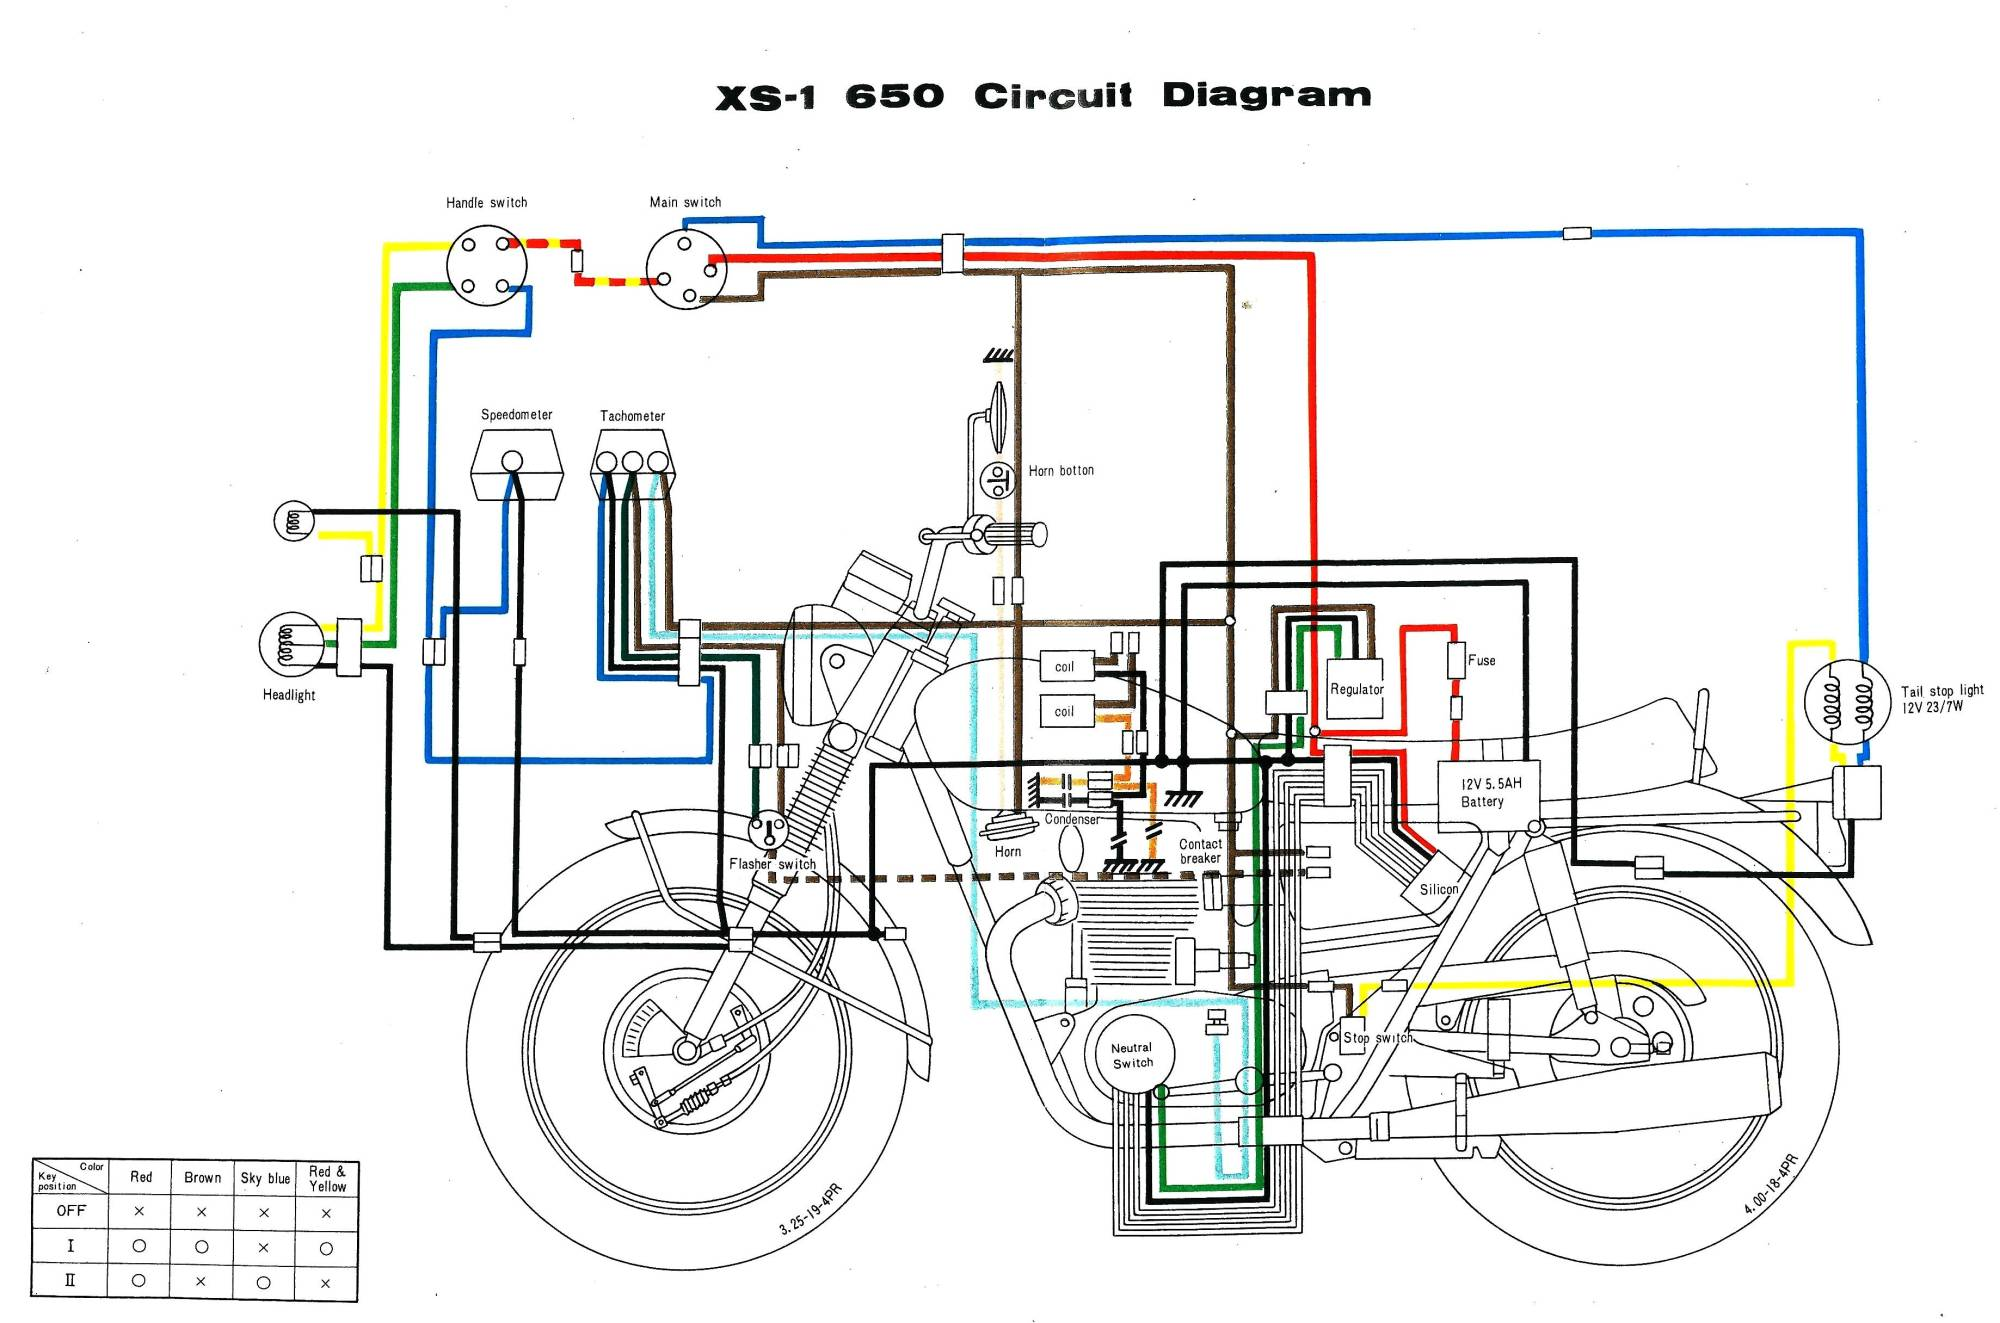 hight resolution of hd wiring diagrams wiring diagram detailed harley davidson golf cart electrical diagram hd wiring diagrams